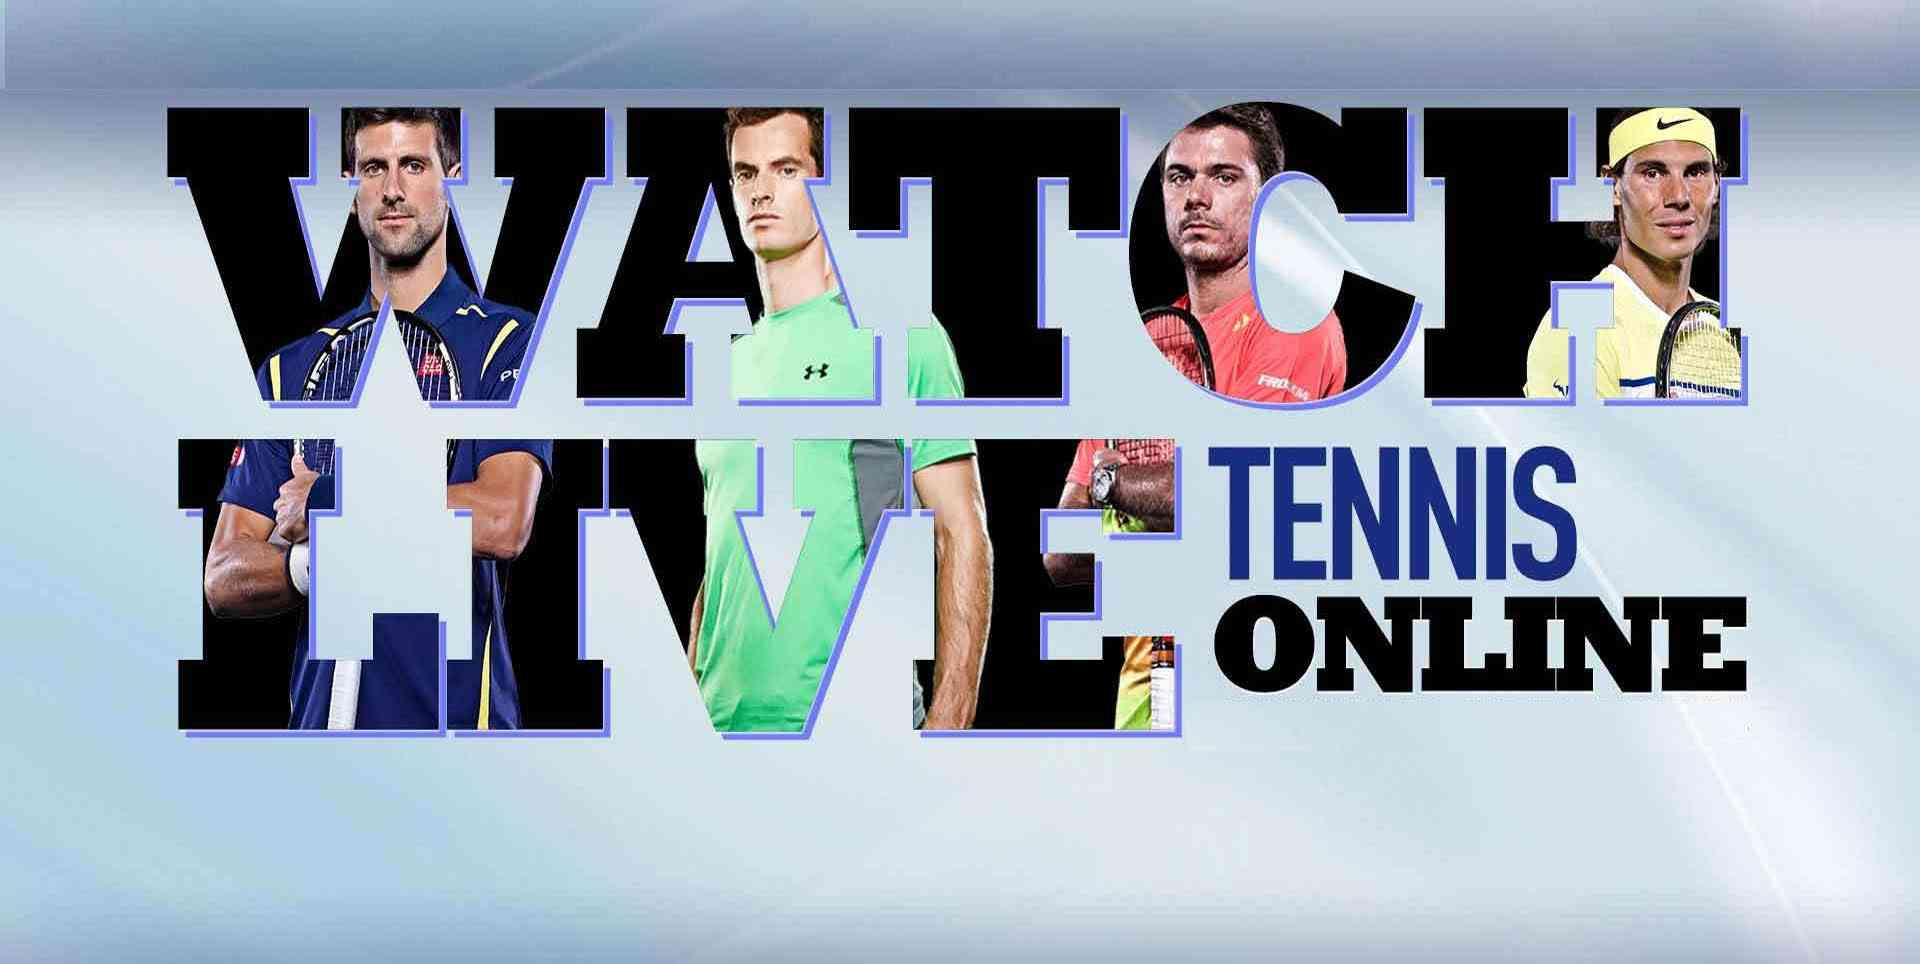 stream-petra-kvitova-vs-madison-keys-online